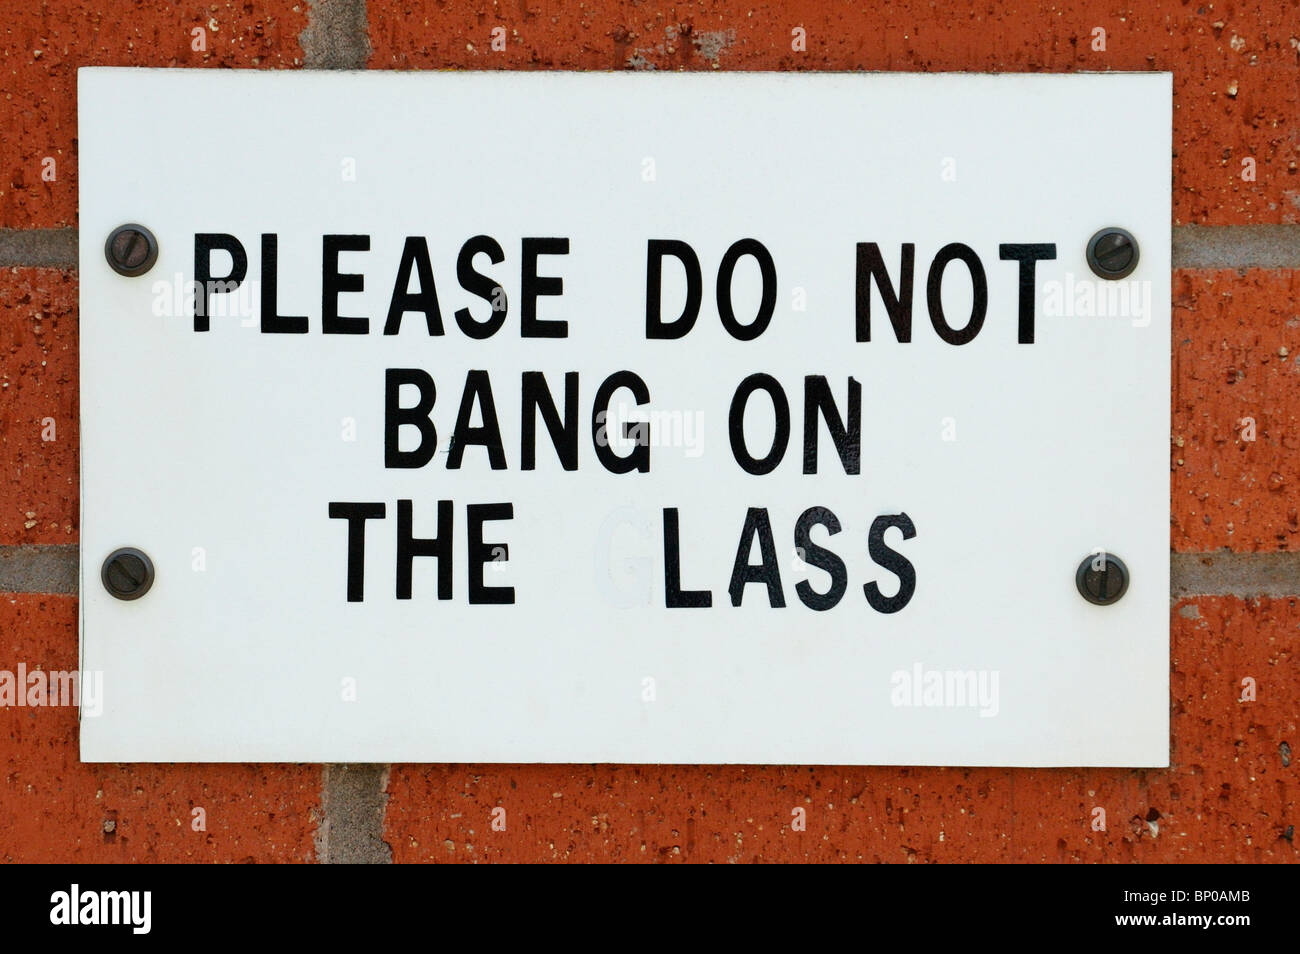 Funny Sign please do not bang on the lass after someone removed the letter g - Stock Image